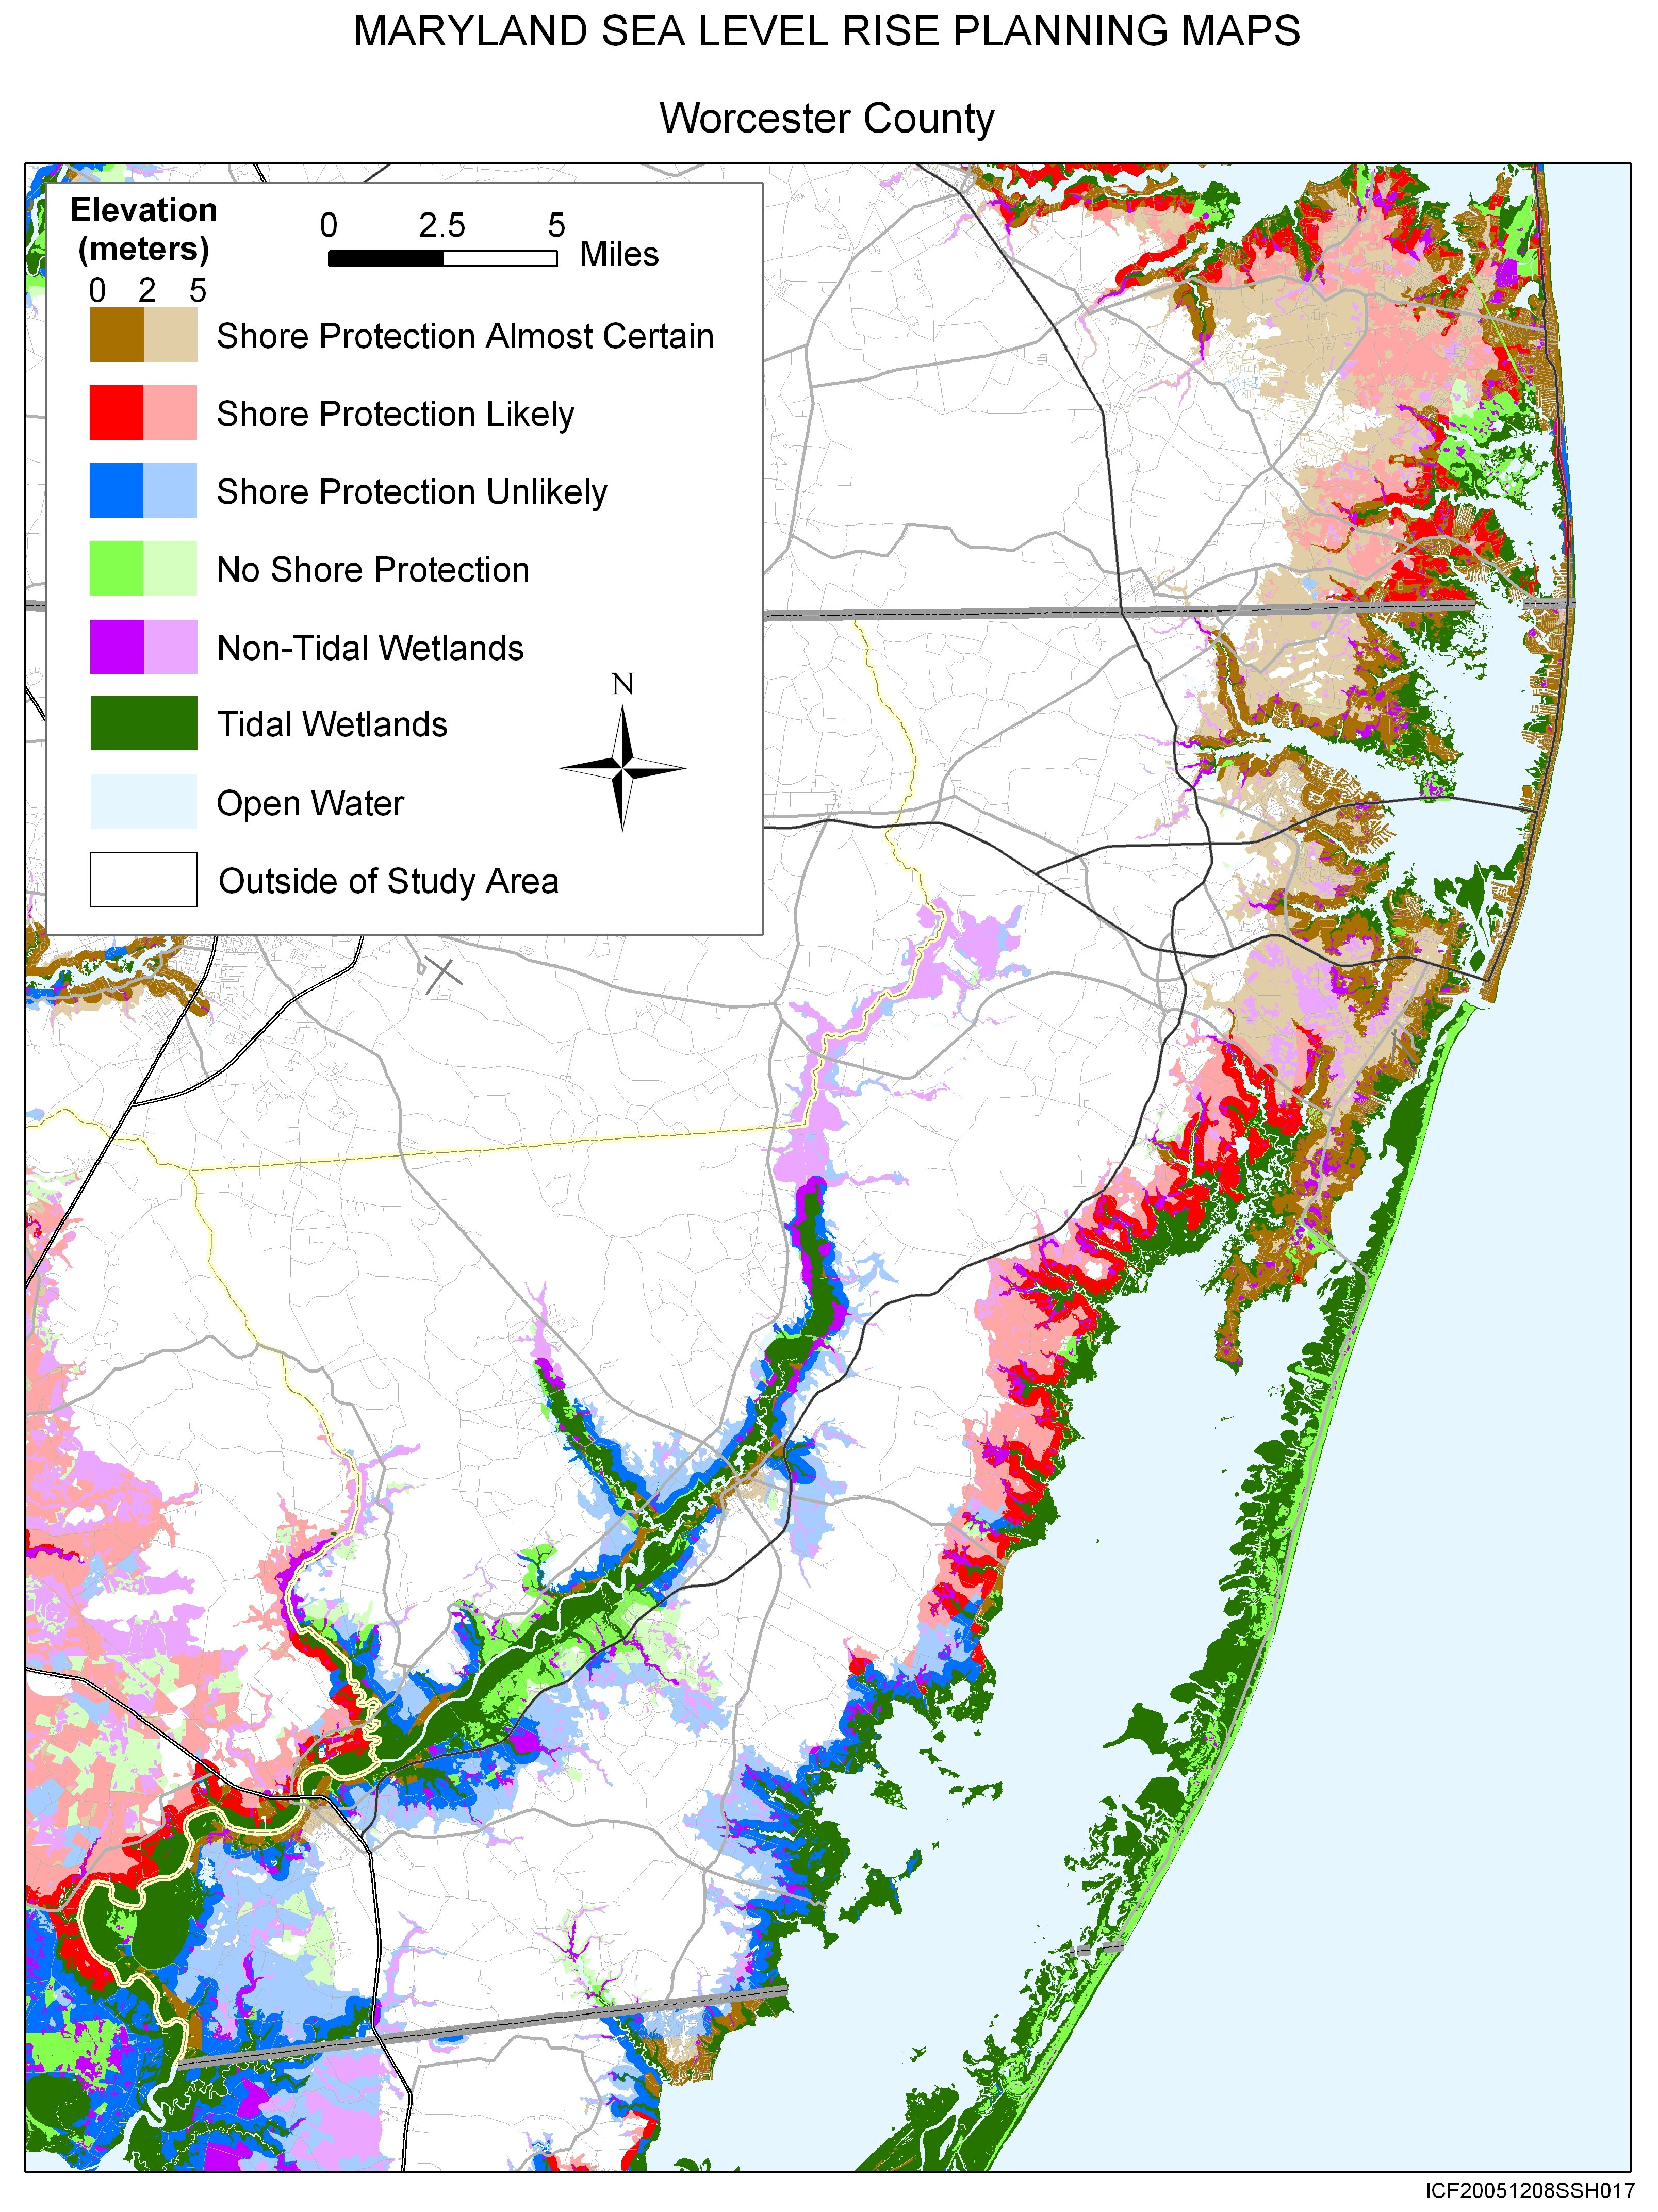 Water Elevation Map.Sea Level Rise Planning Maps